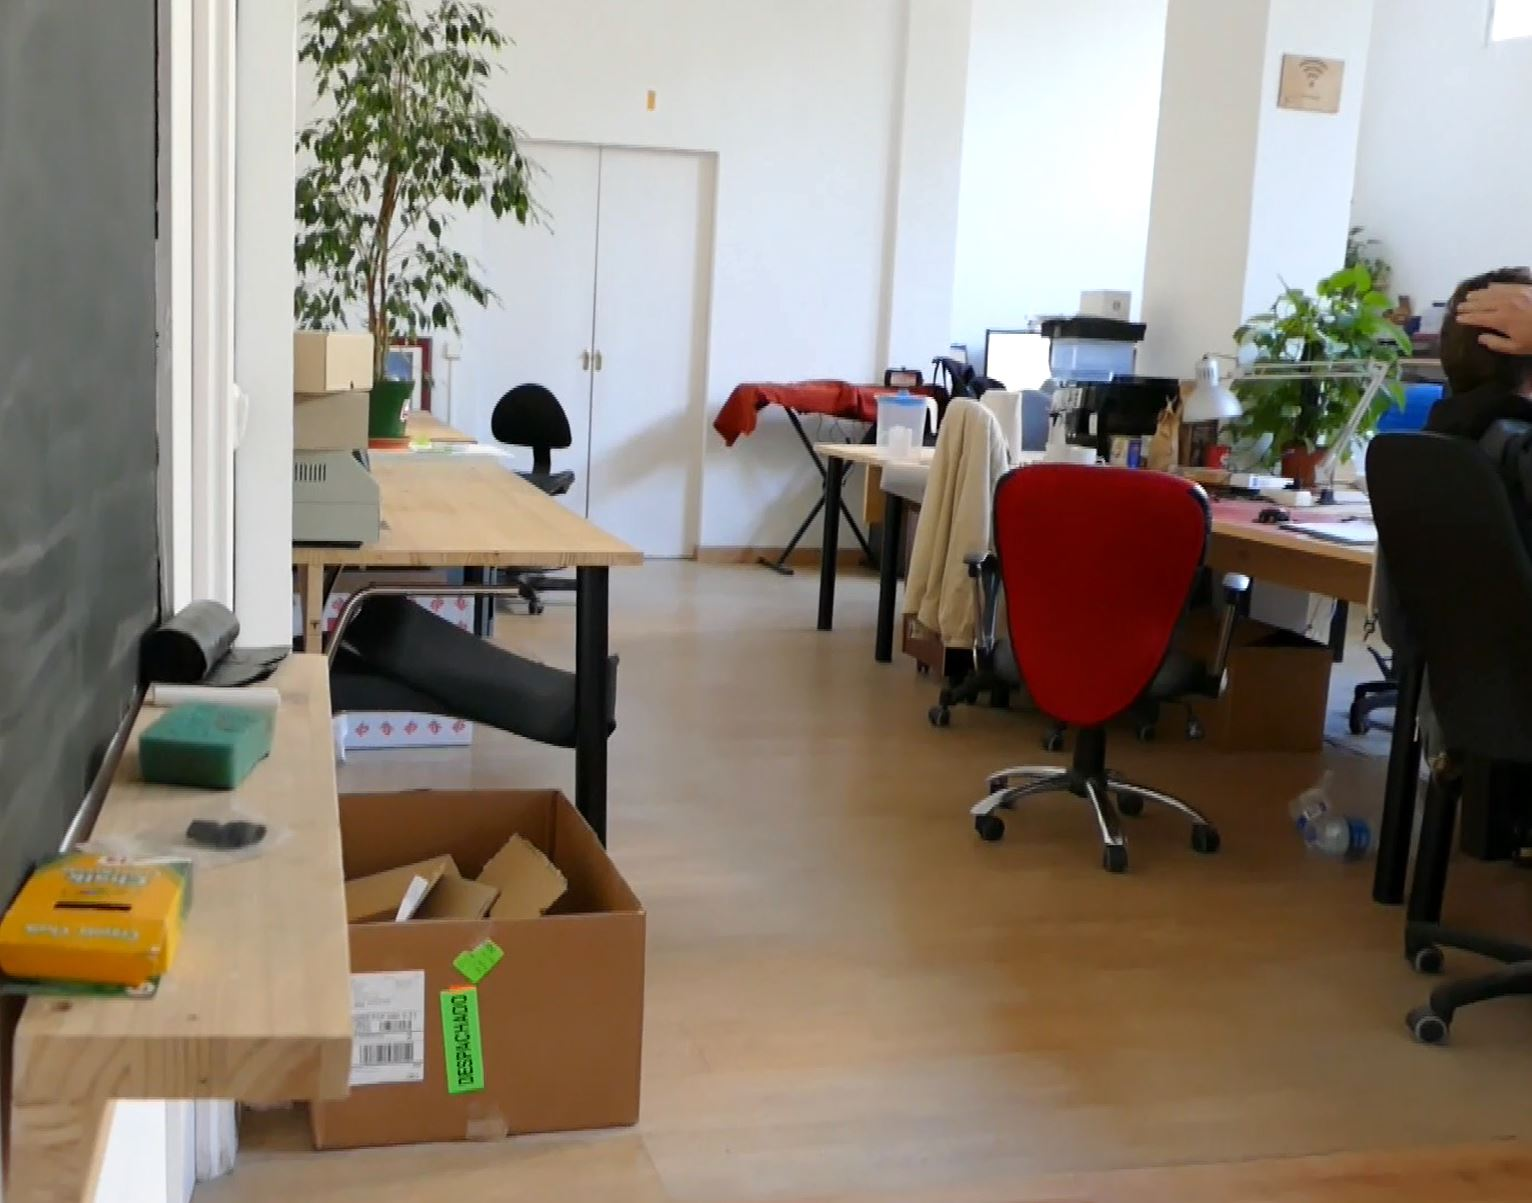 Tour: MADE Makerspace in Barcelona, Spain - SolidSmack